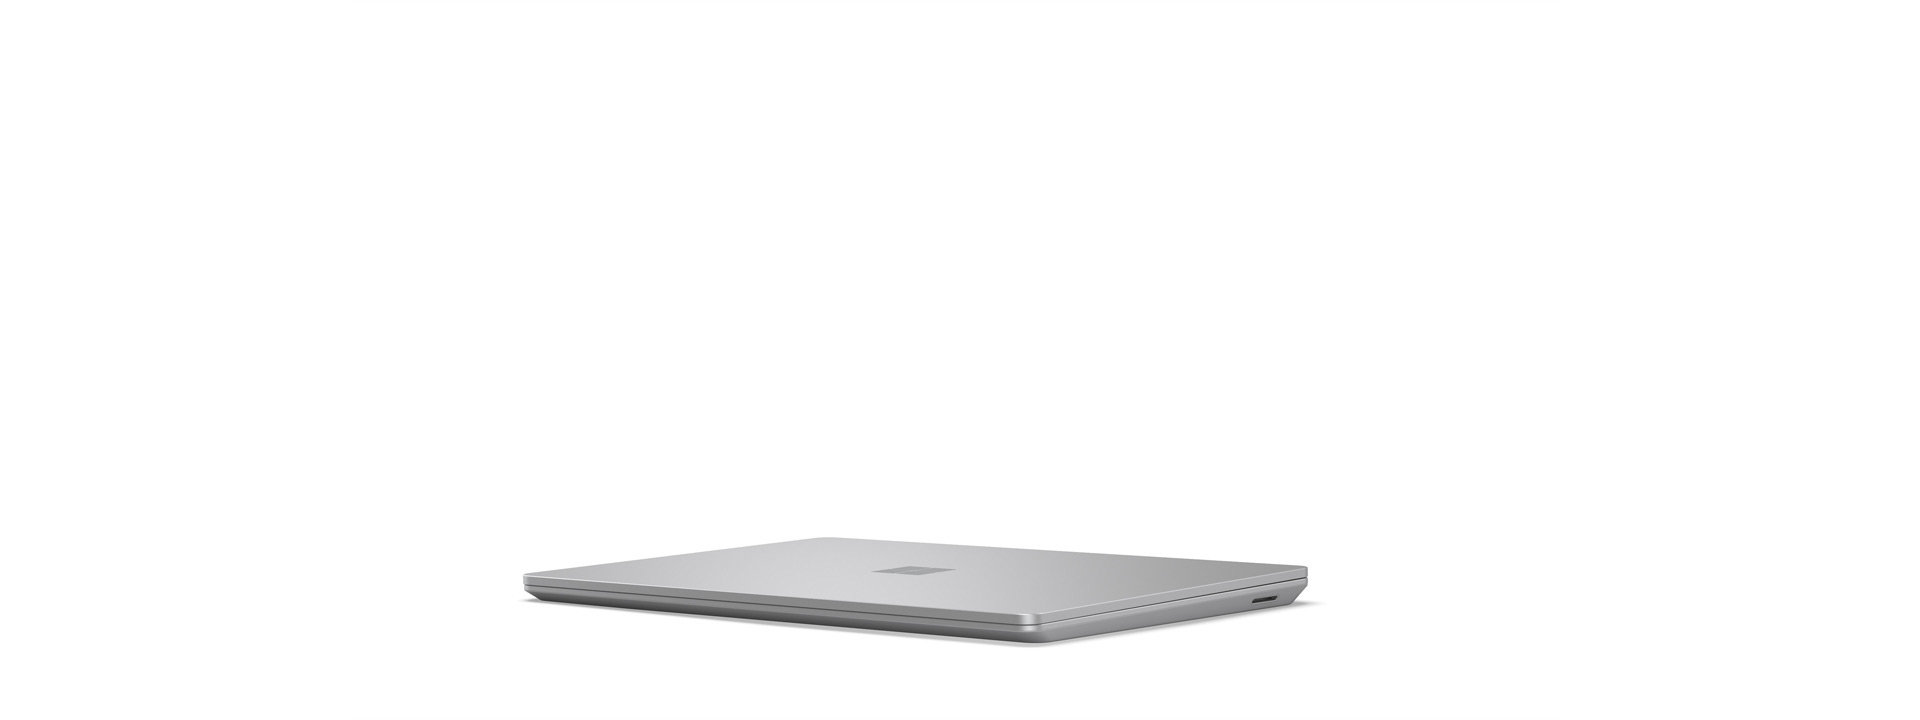 Rotating view of Surface Laptop Go.